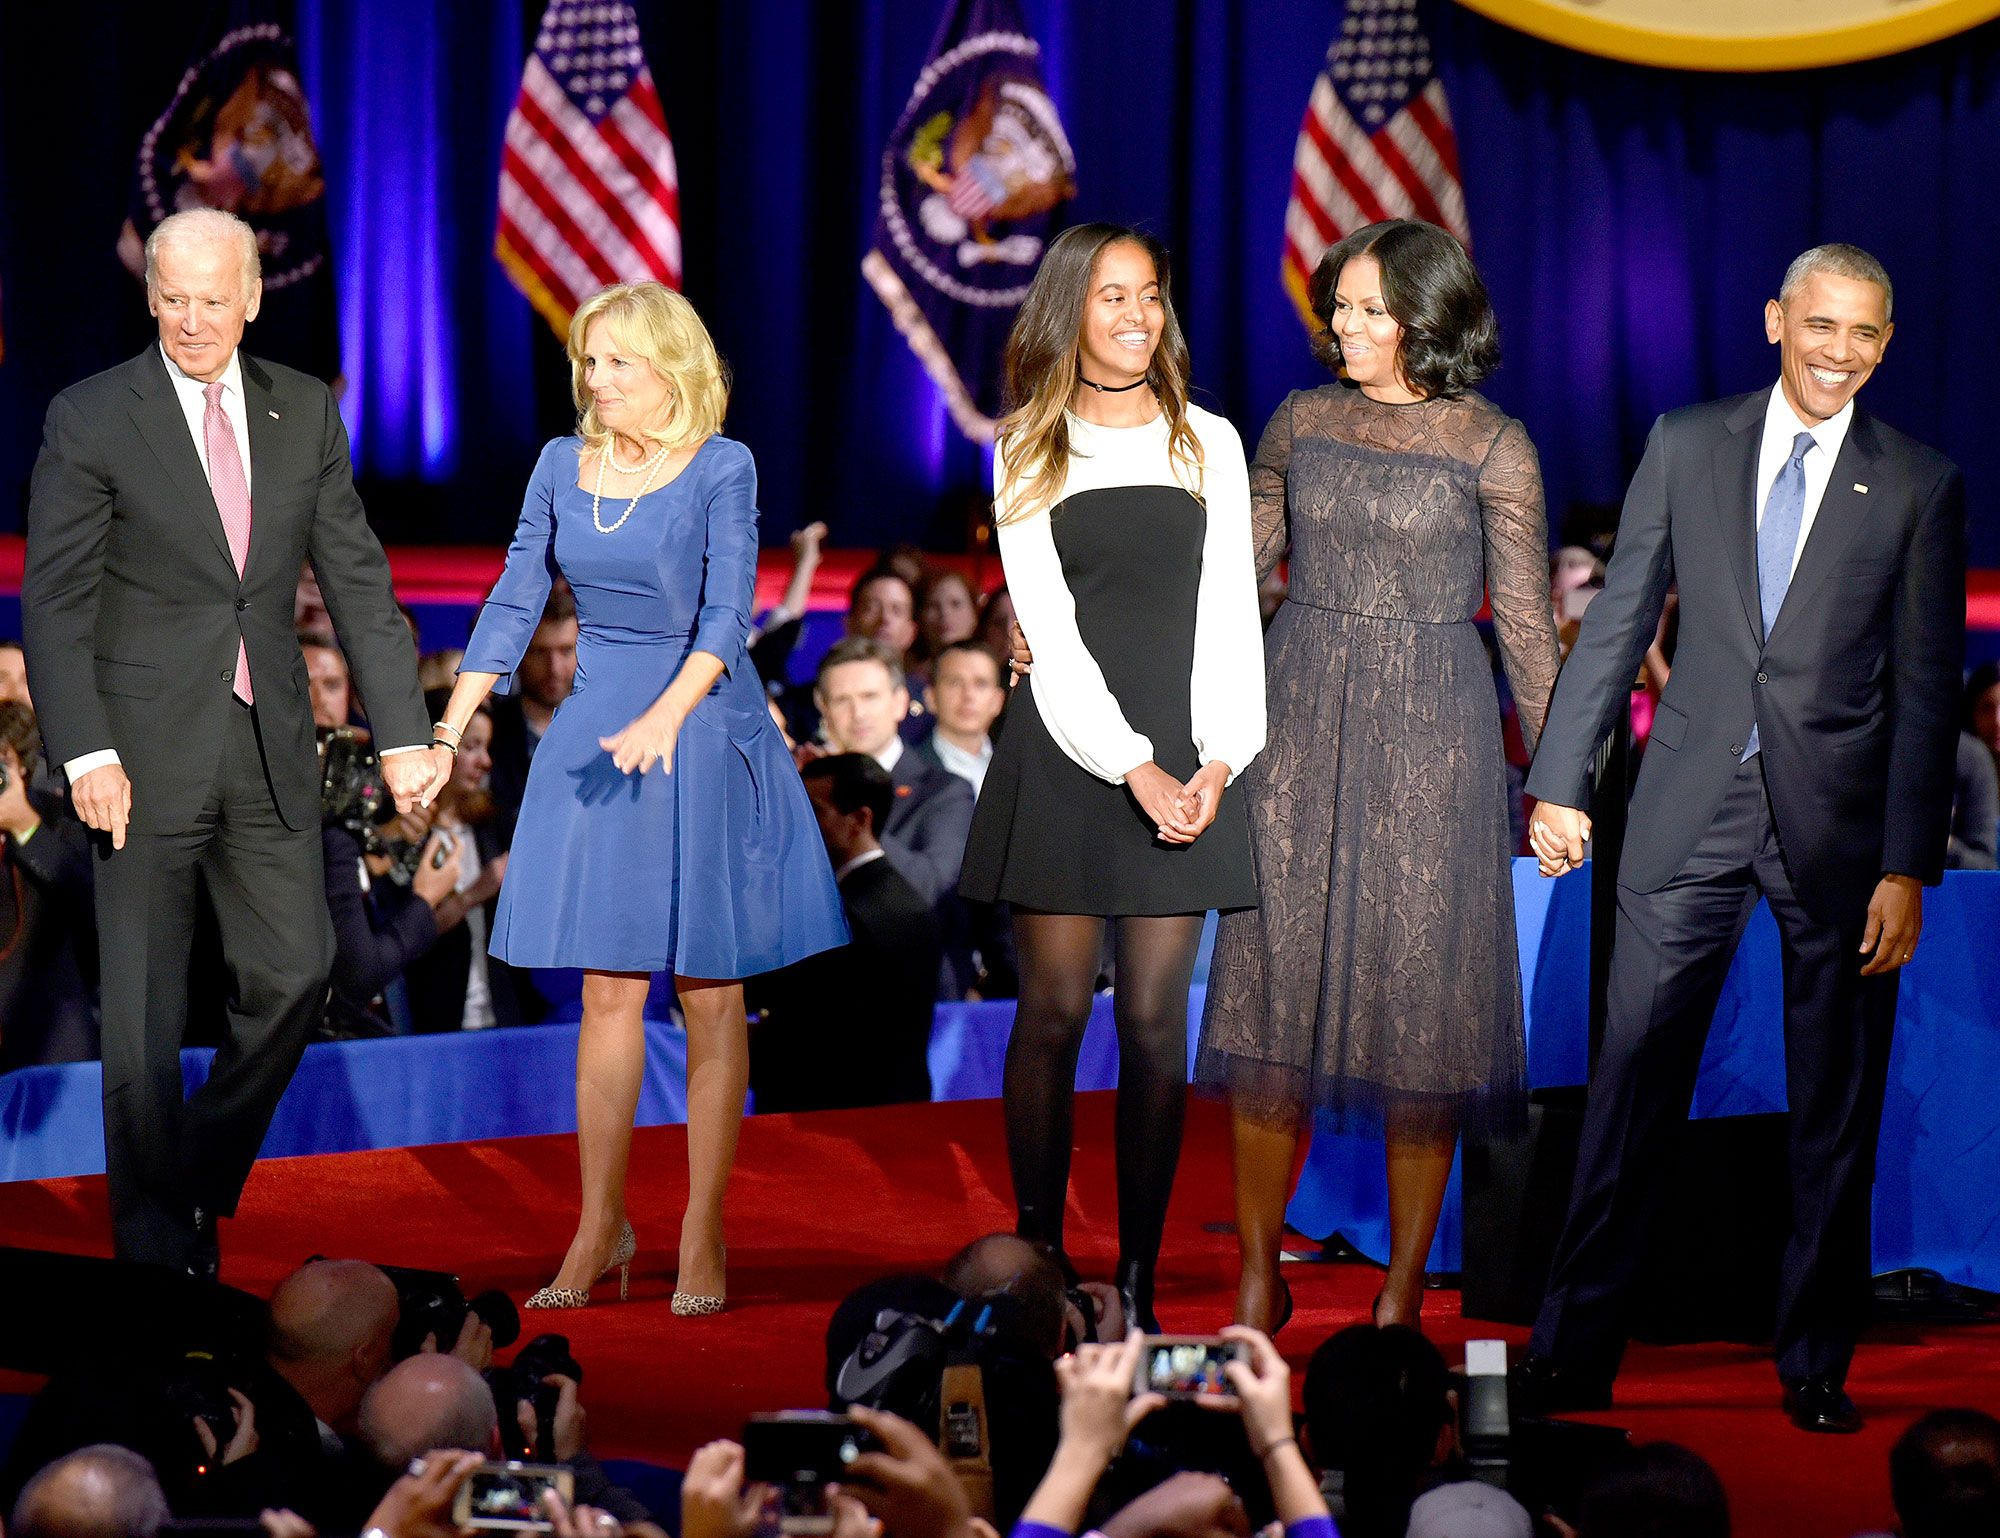 U.S. President Barack Obama is joined on stage by first lady Michelle Obama, their daughter Malia Obama, U.S. Vice President Joseph